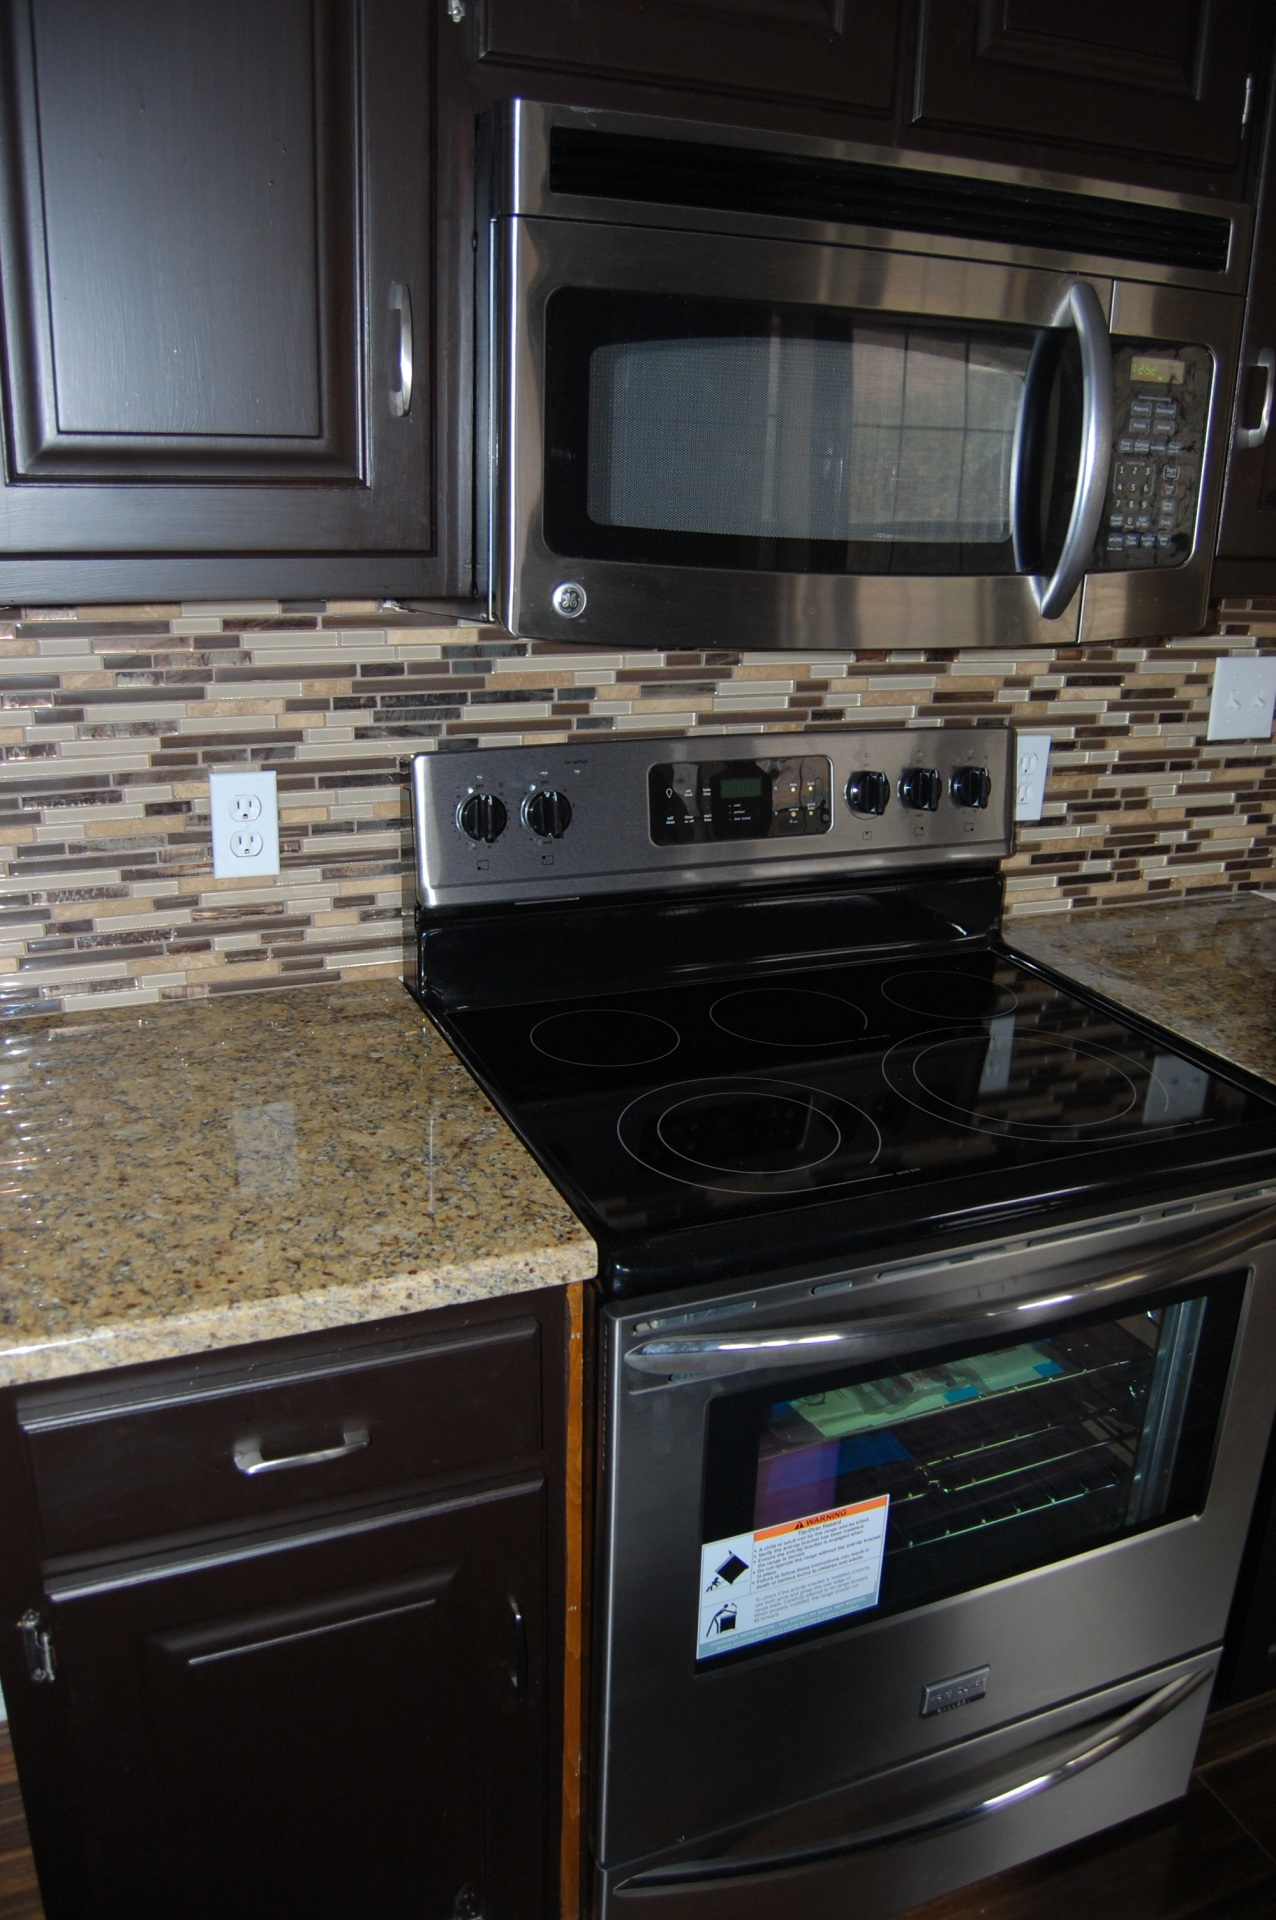 Stainless Steel and Black Appliances